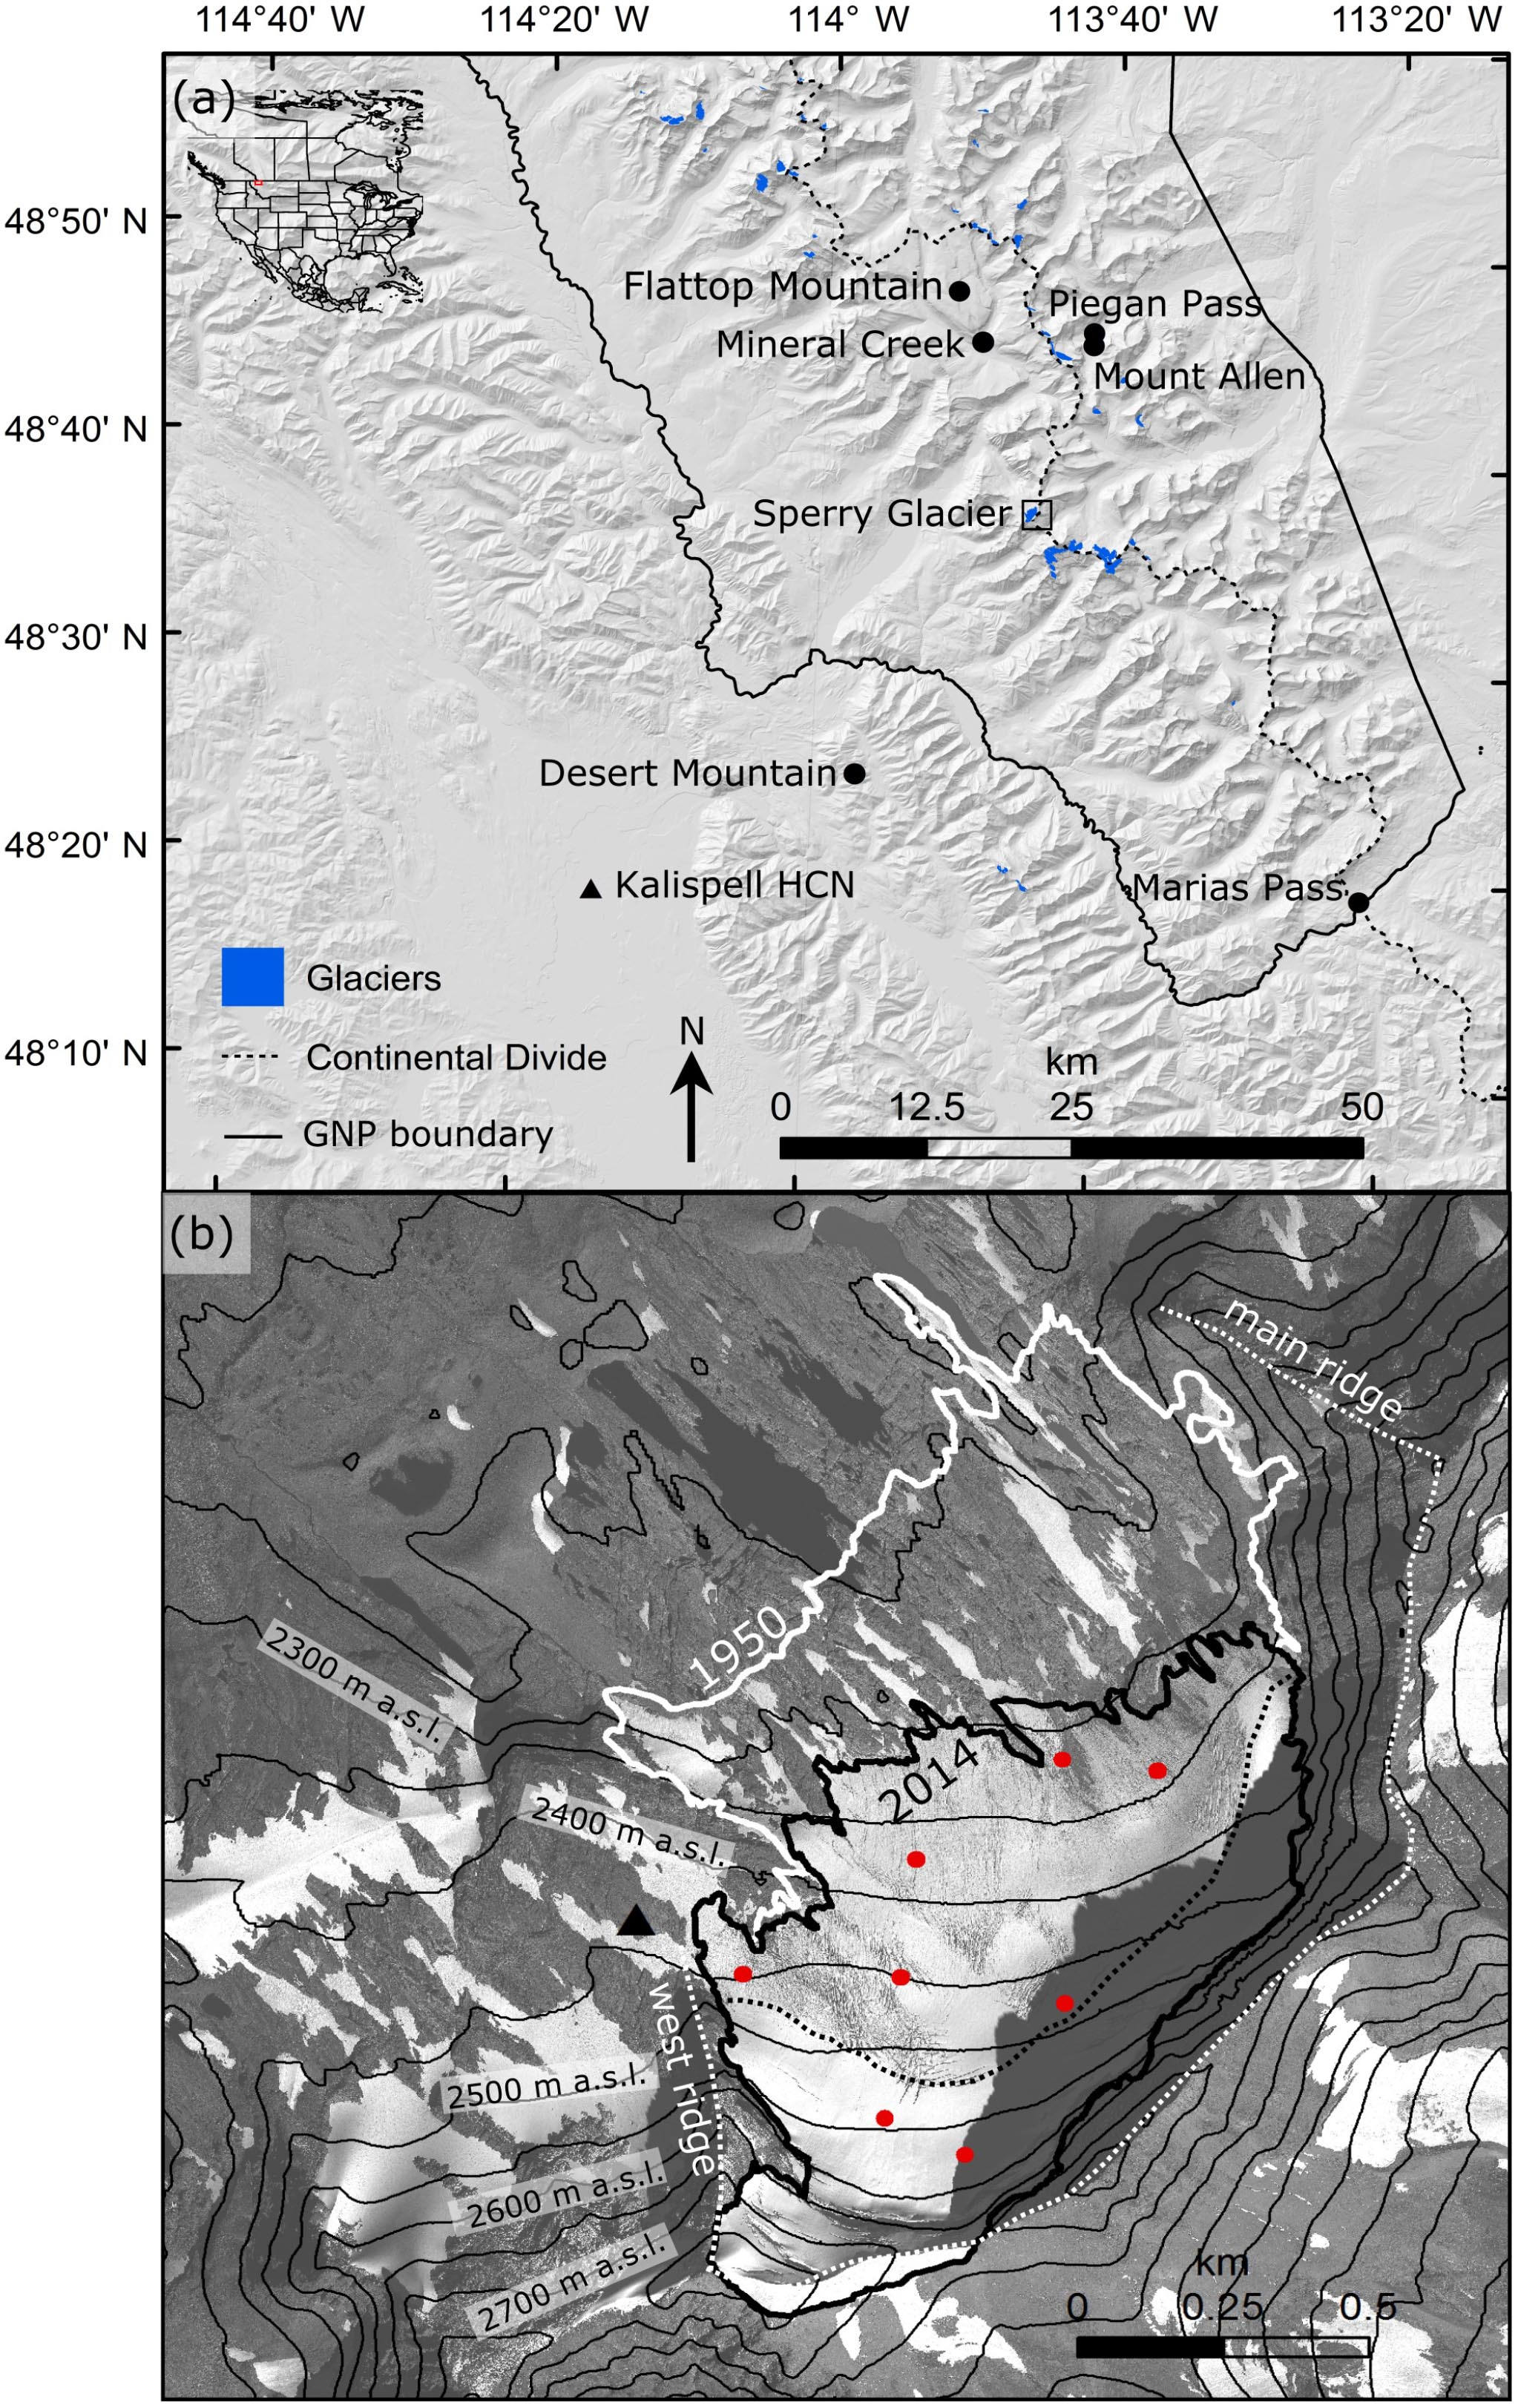 TC - Local topography increasingly influences the mass balance of a